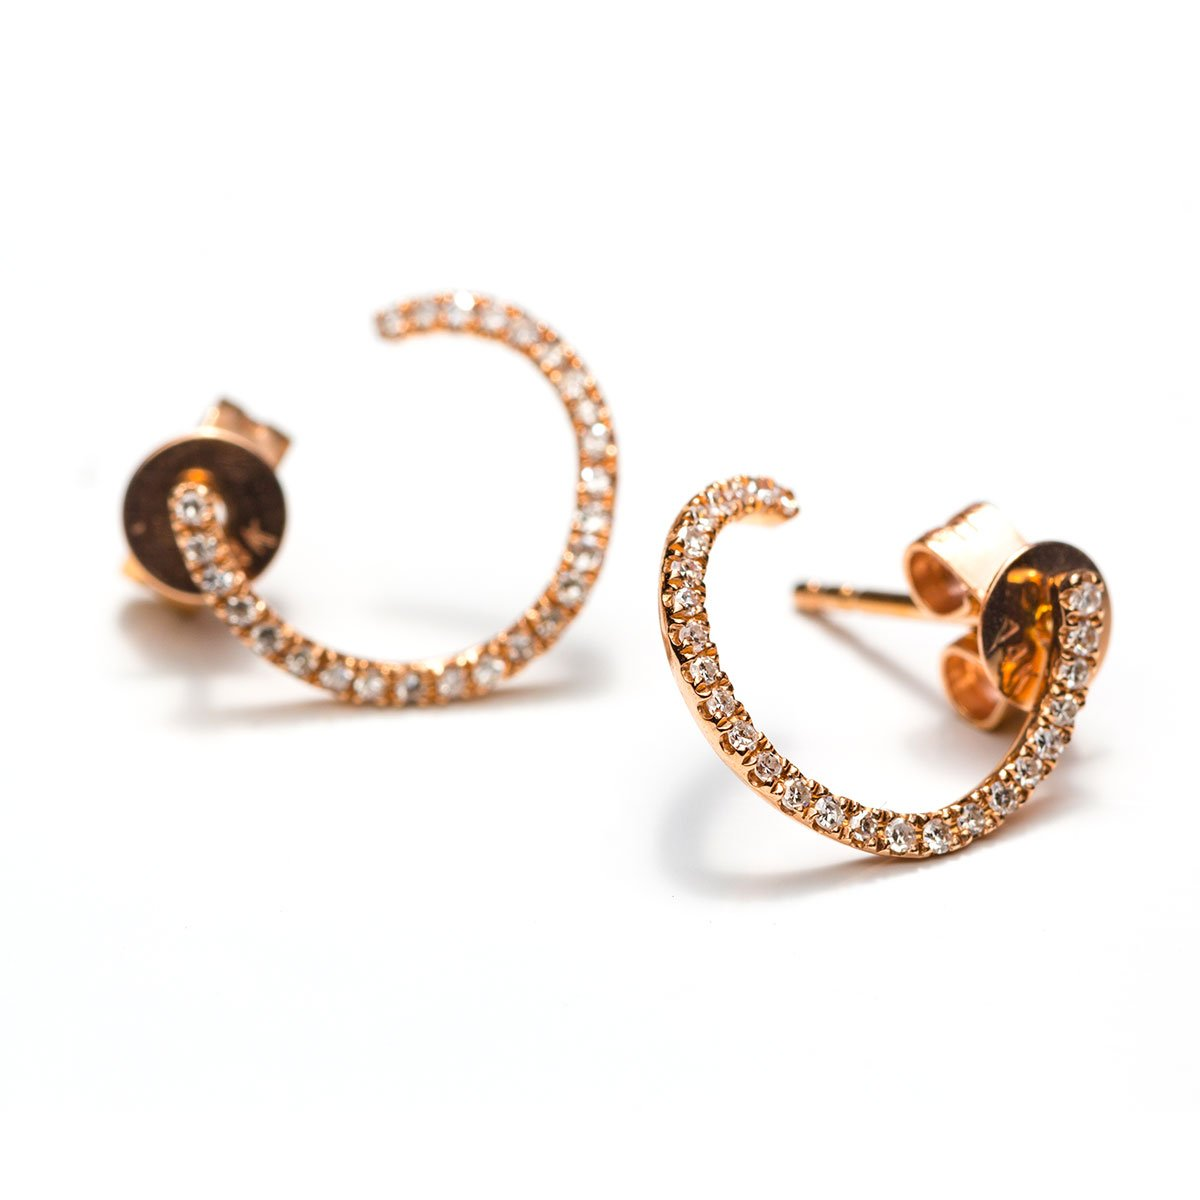 Diamond Spiral Studs-Earrings-Zofia Day Co.